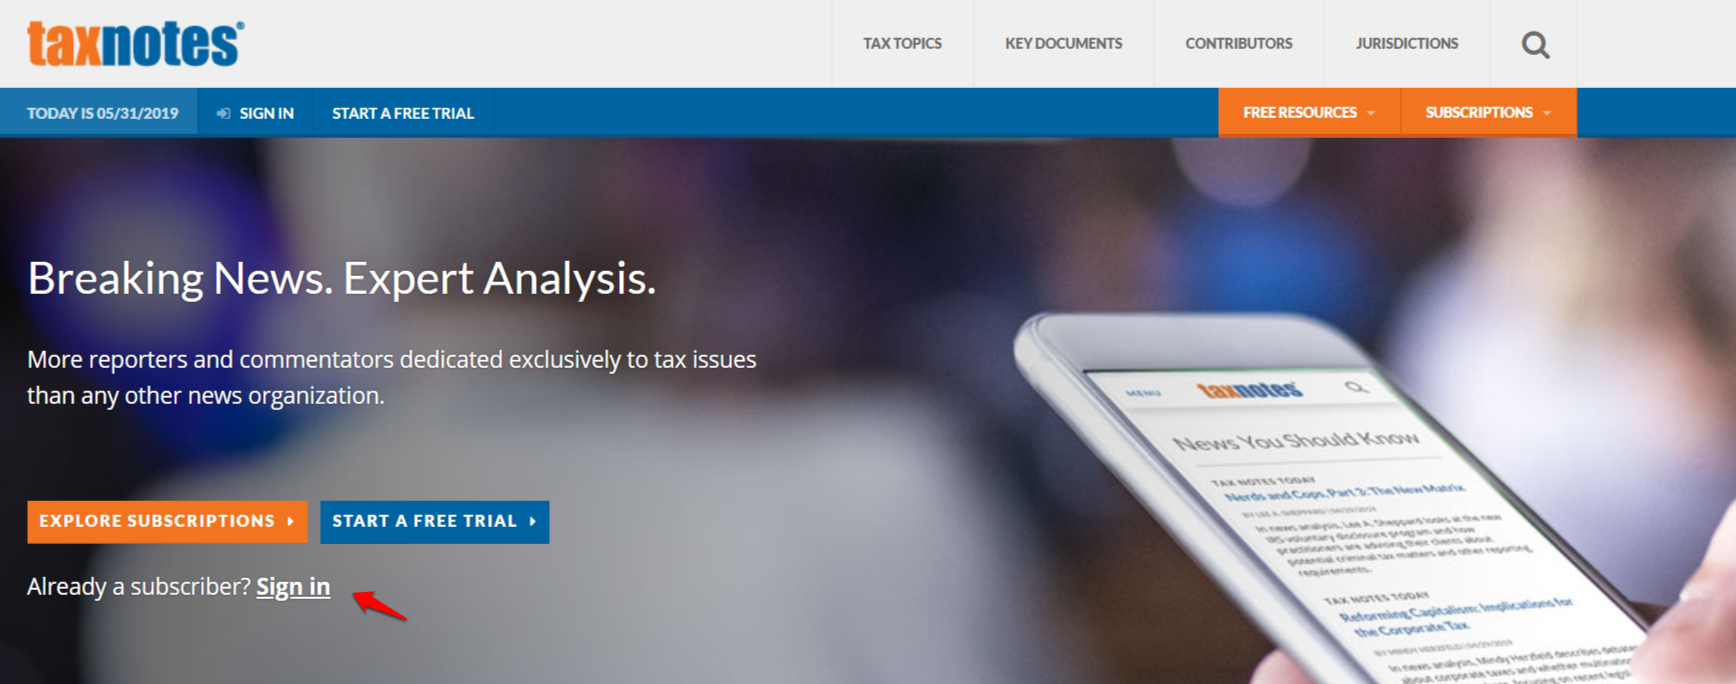 Tax Analysts home page